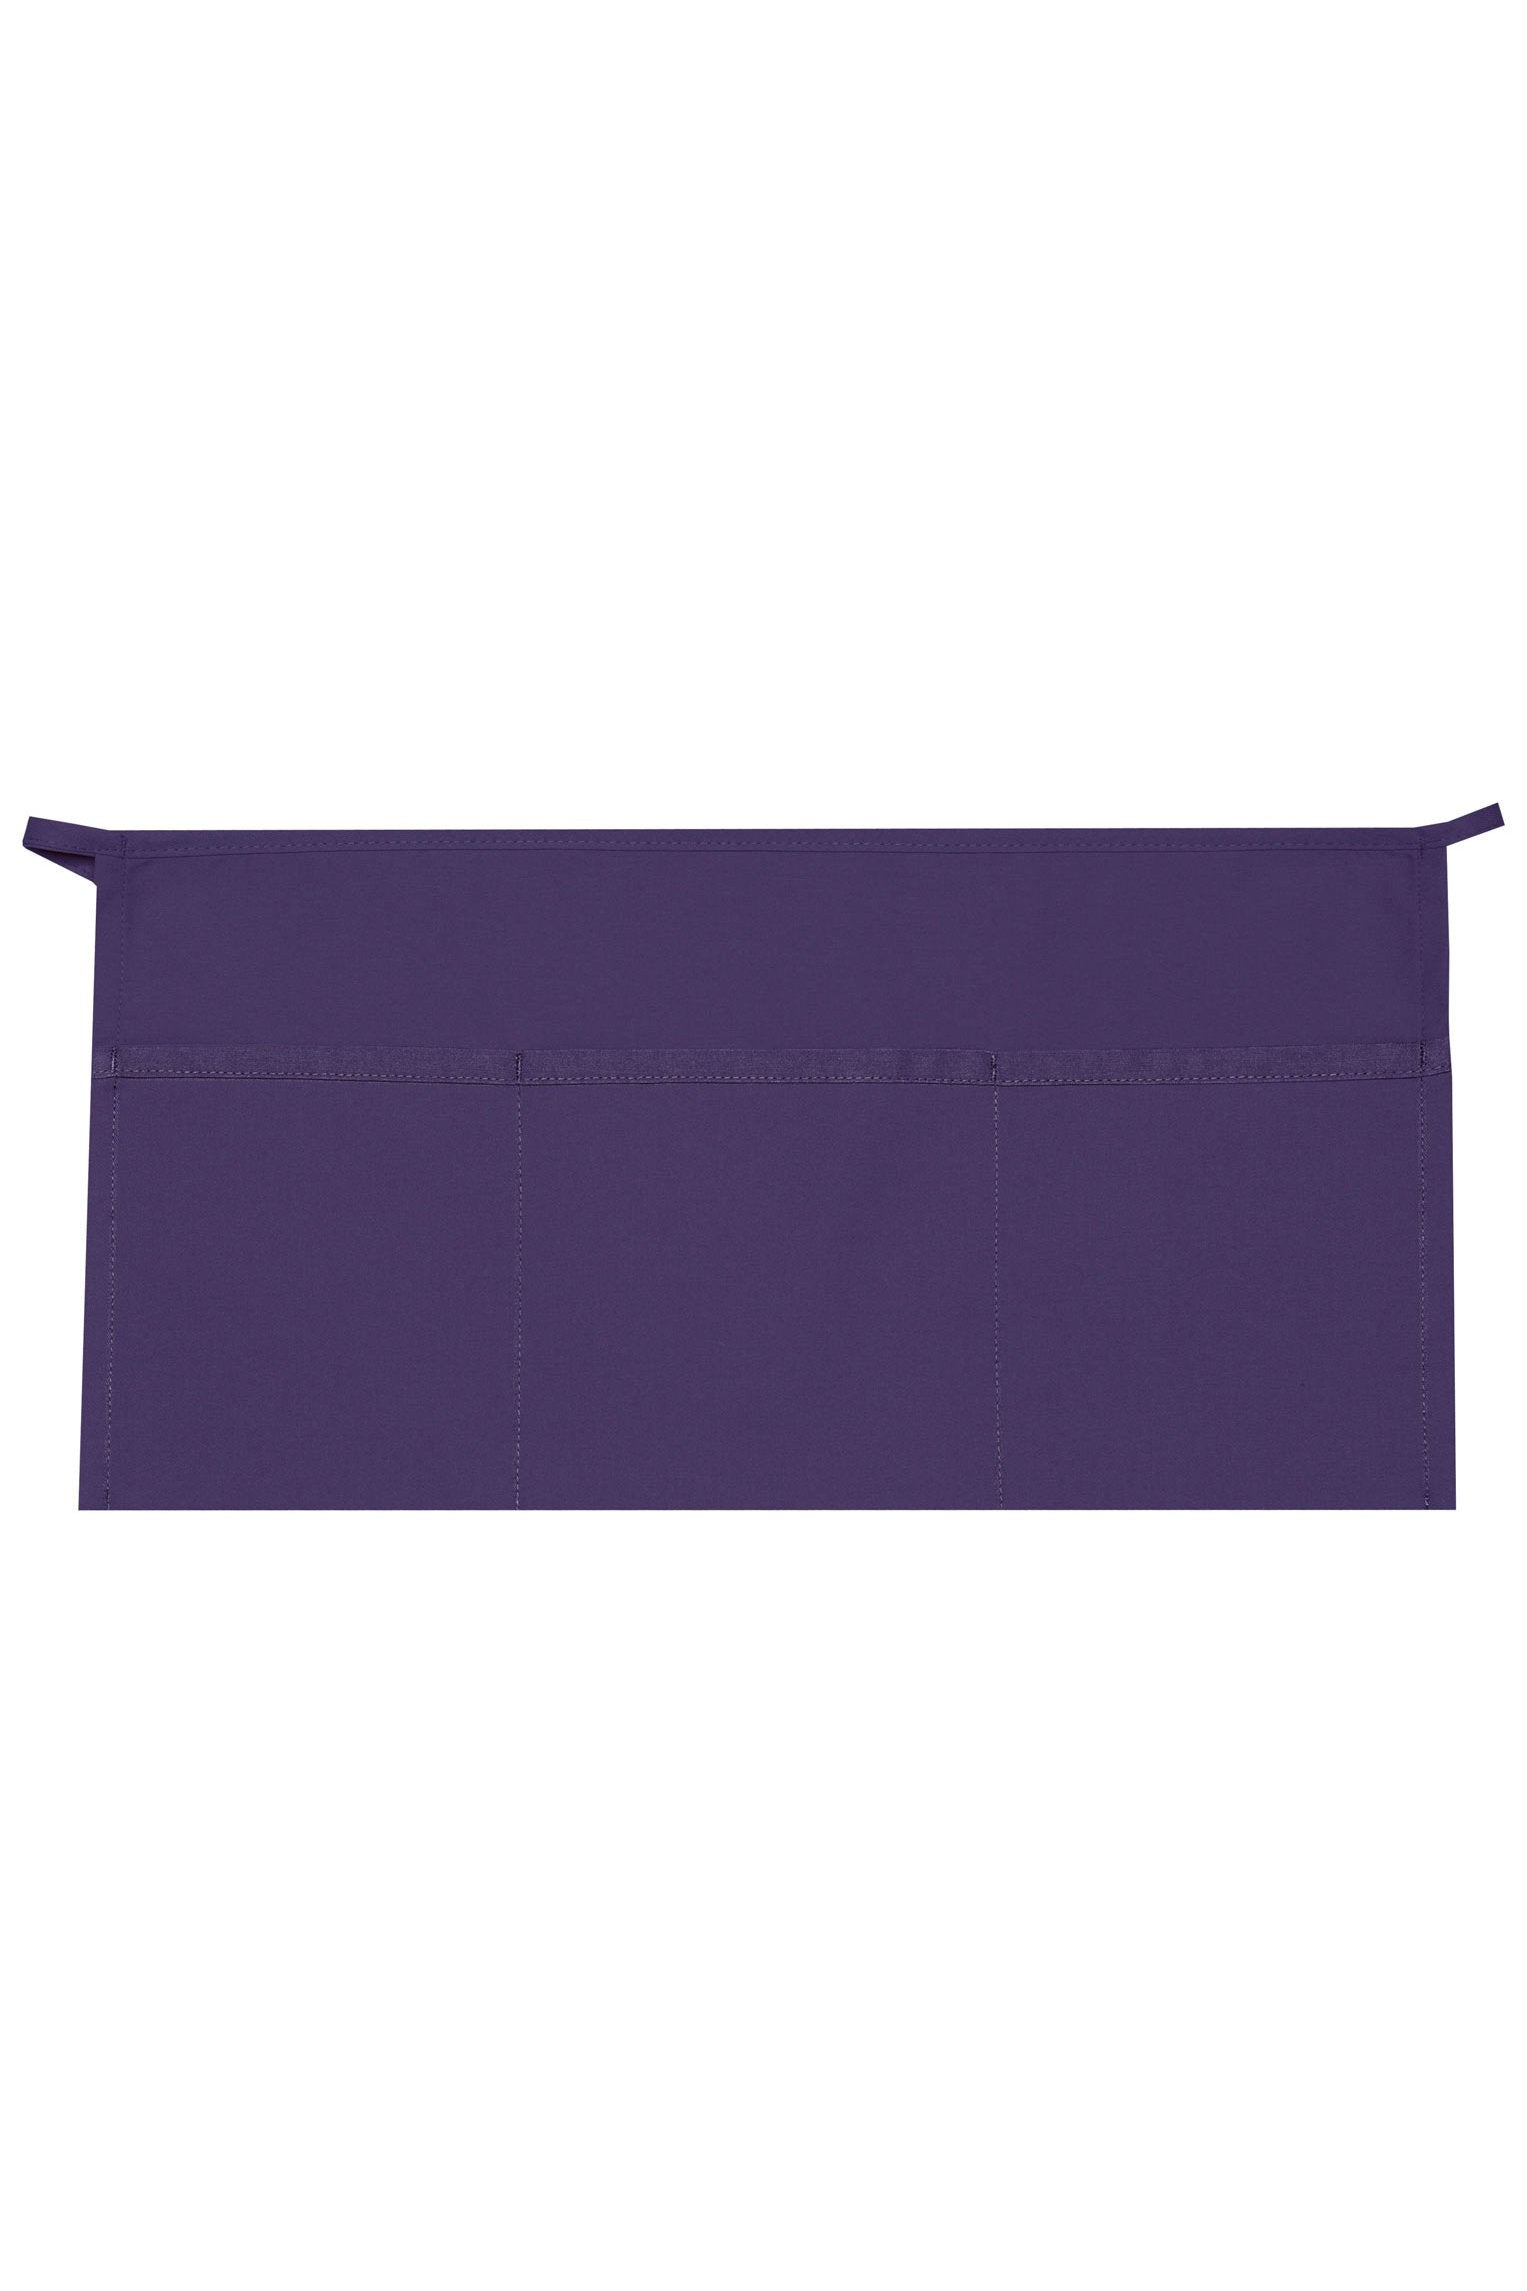 Purple XL Waist Apron (3 Pockets)